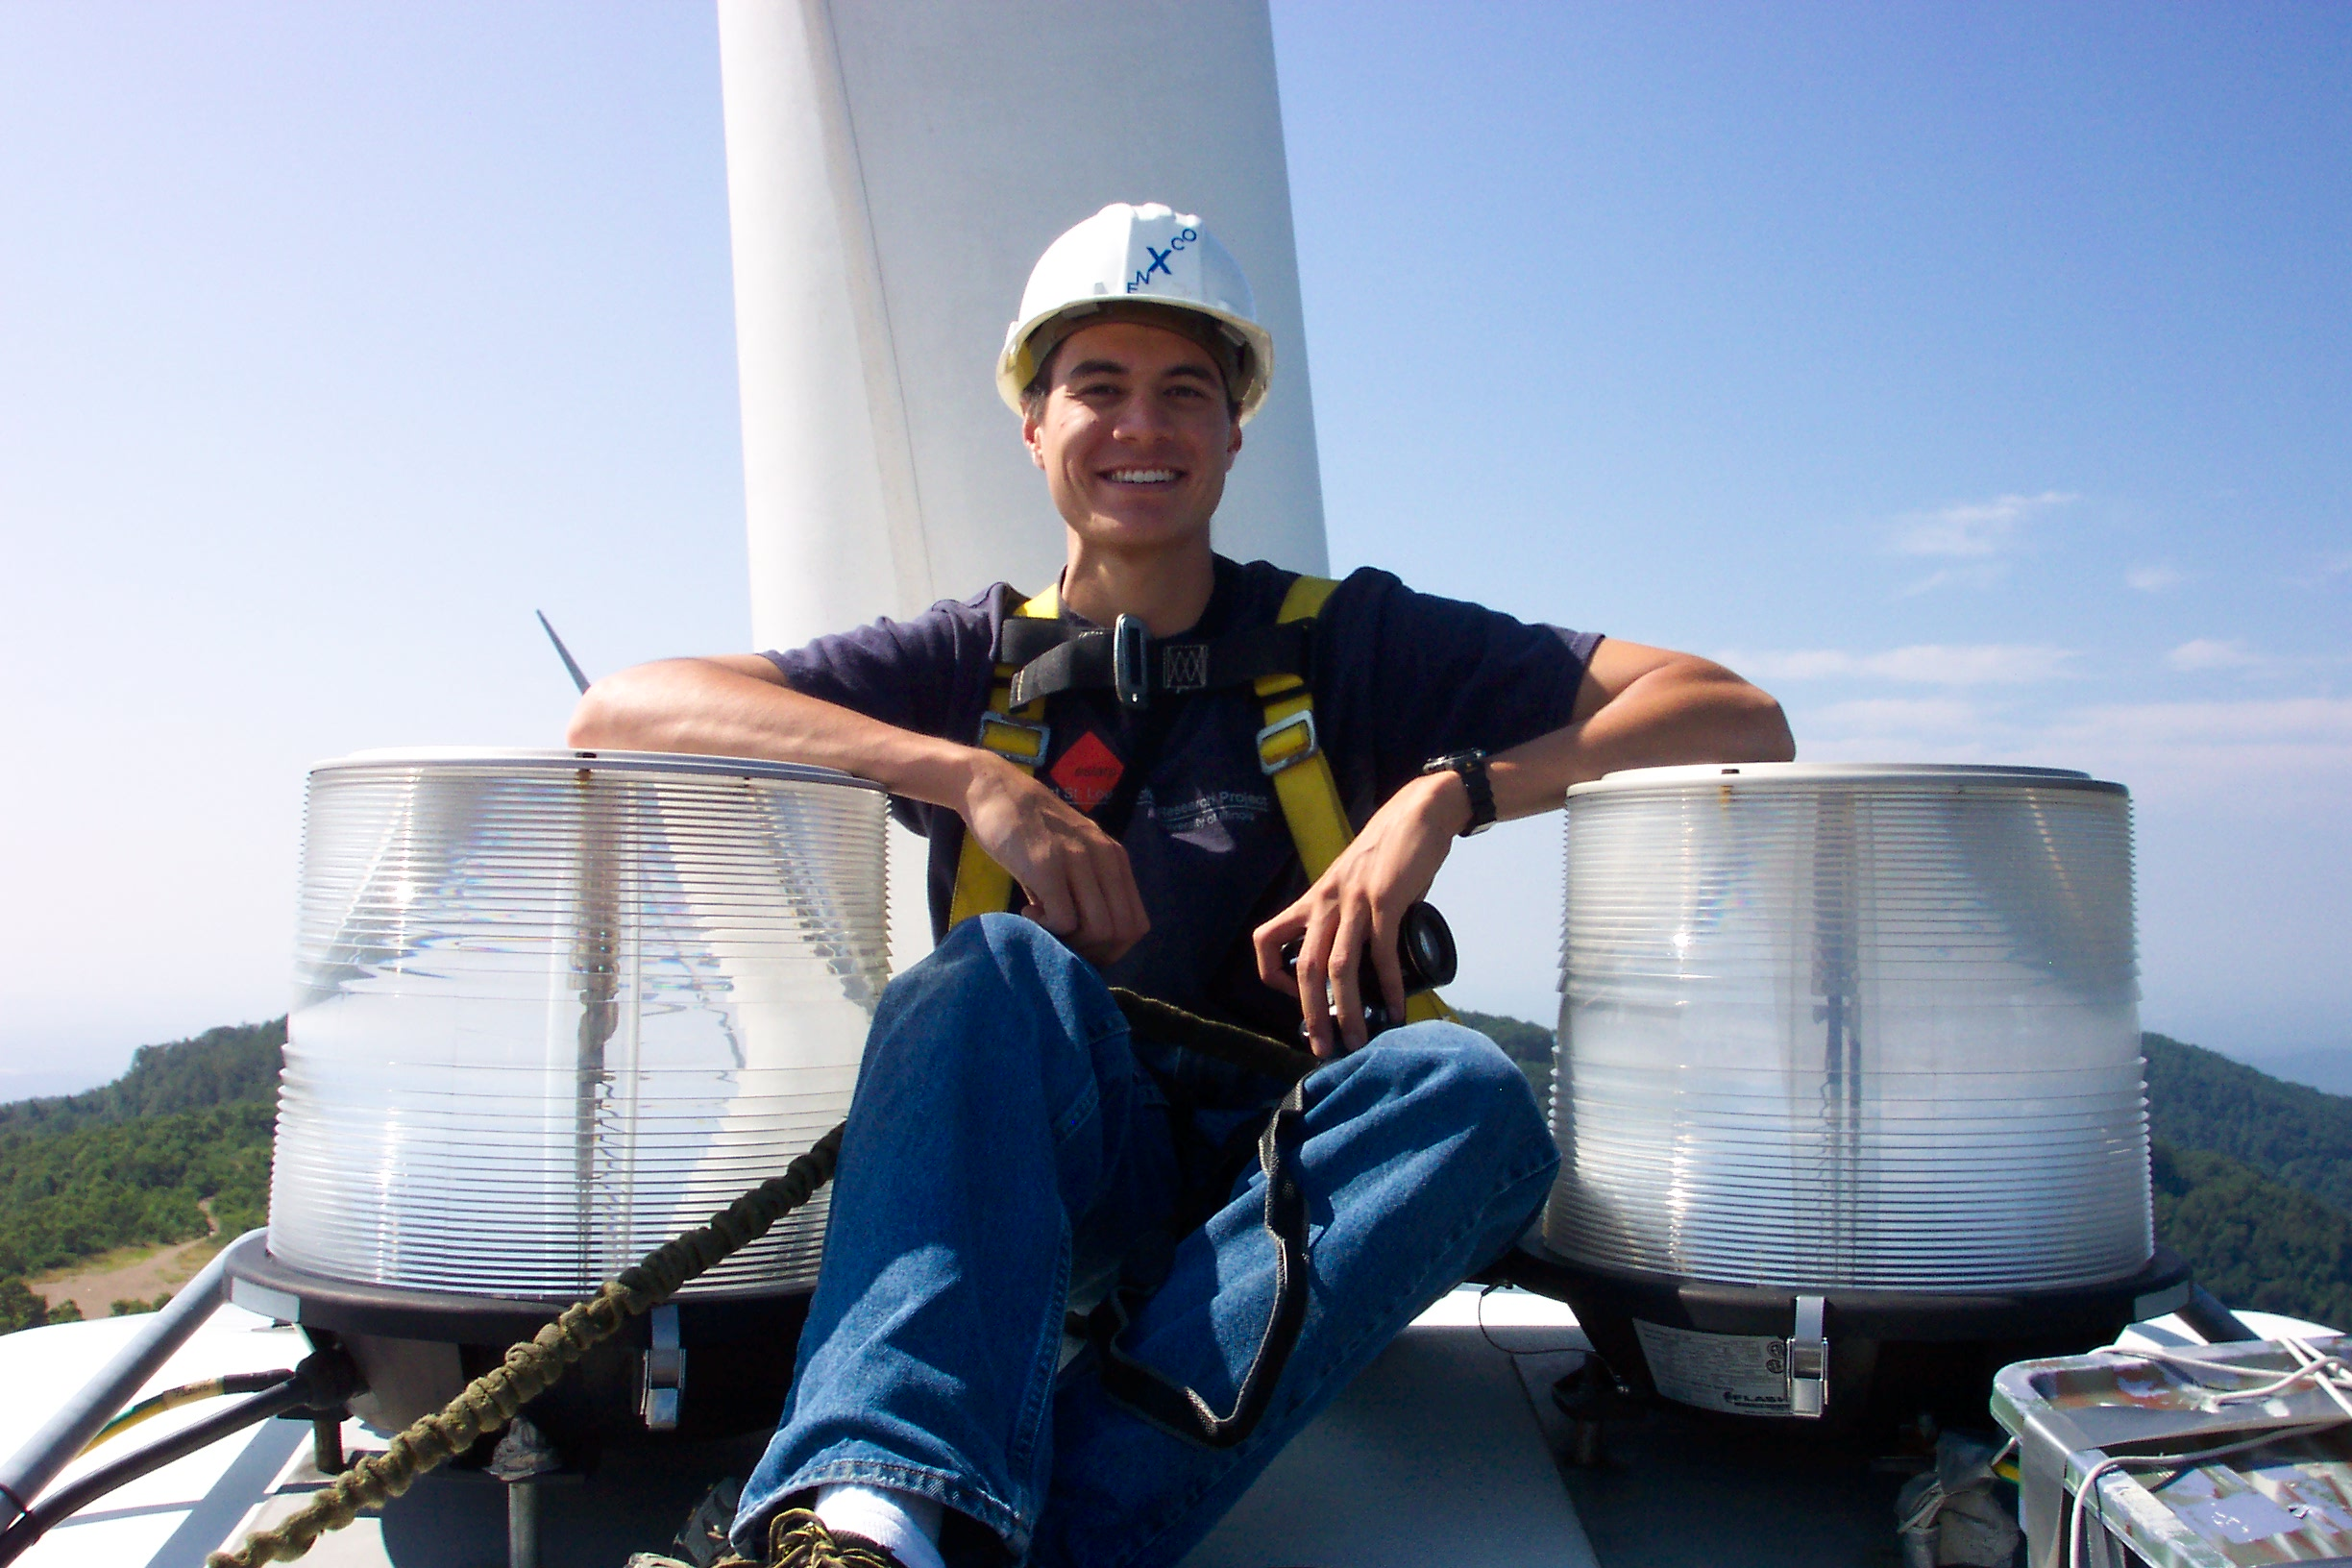 Yours truly on the top of the nacelle of the wind turbine